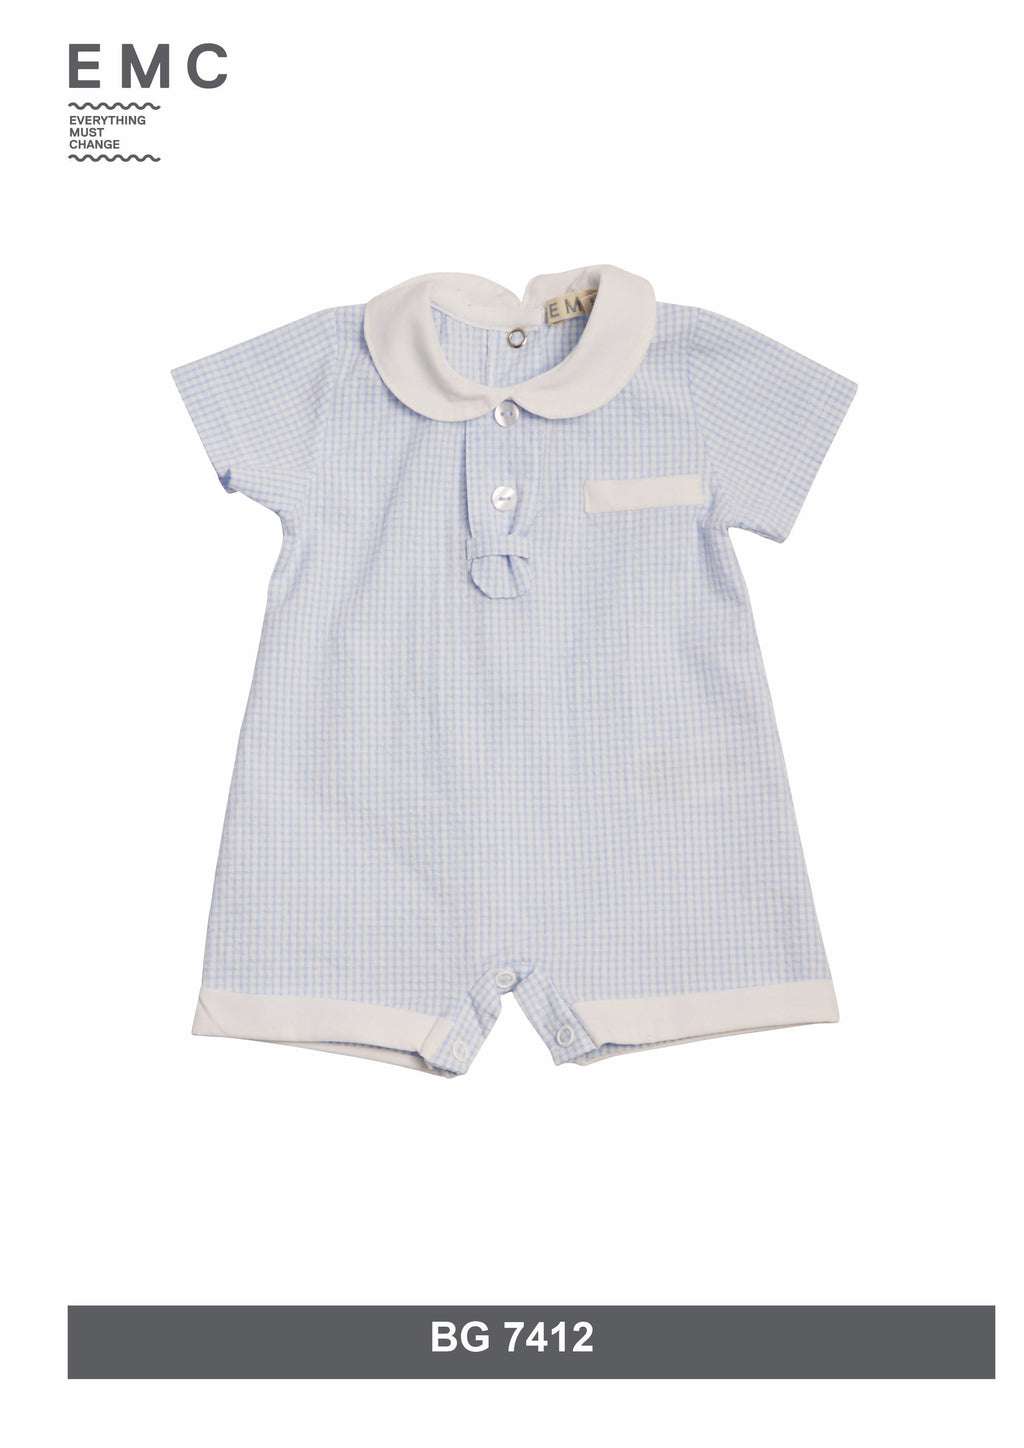 SS19 Everything Must Change Baby Boys Blue & White Check Romper